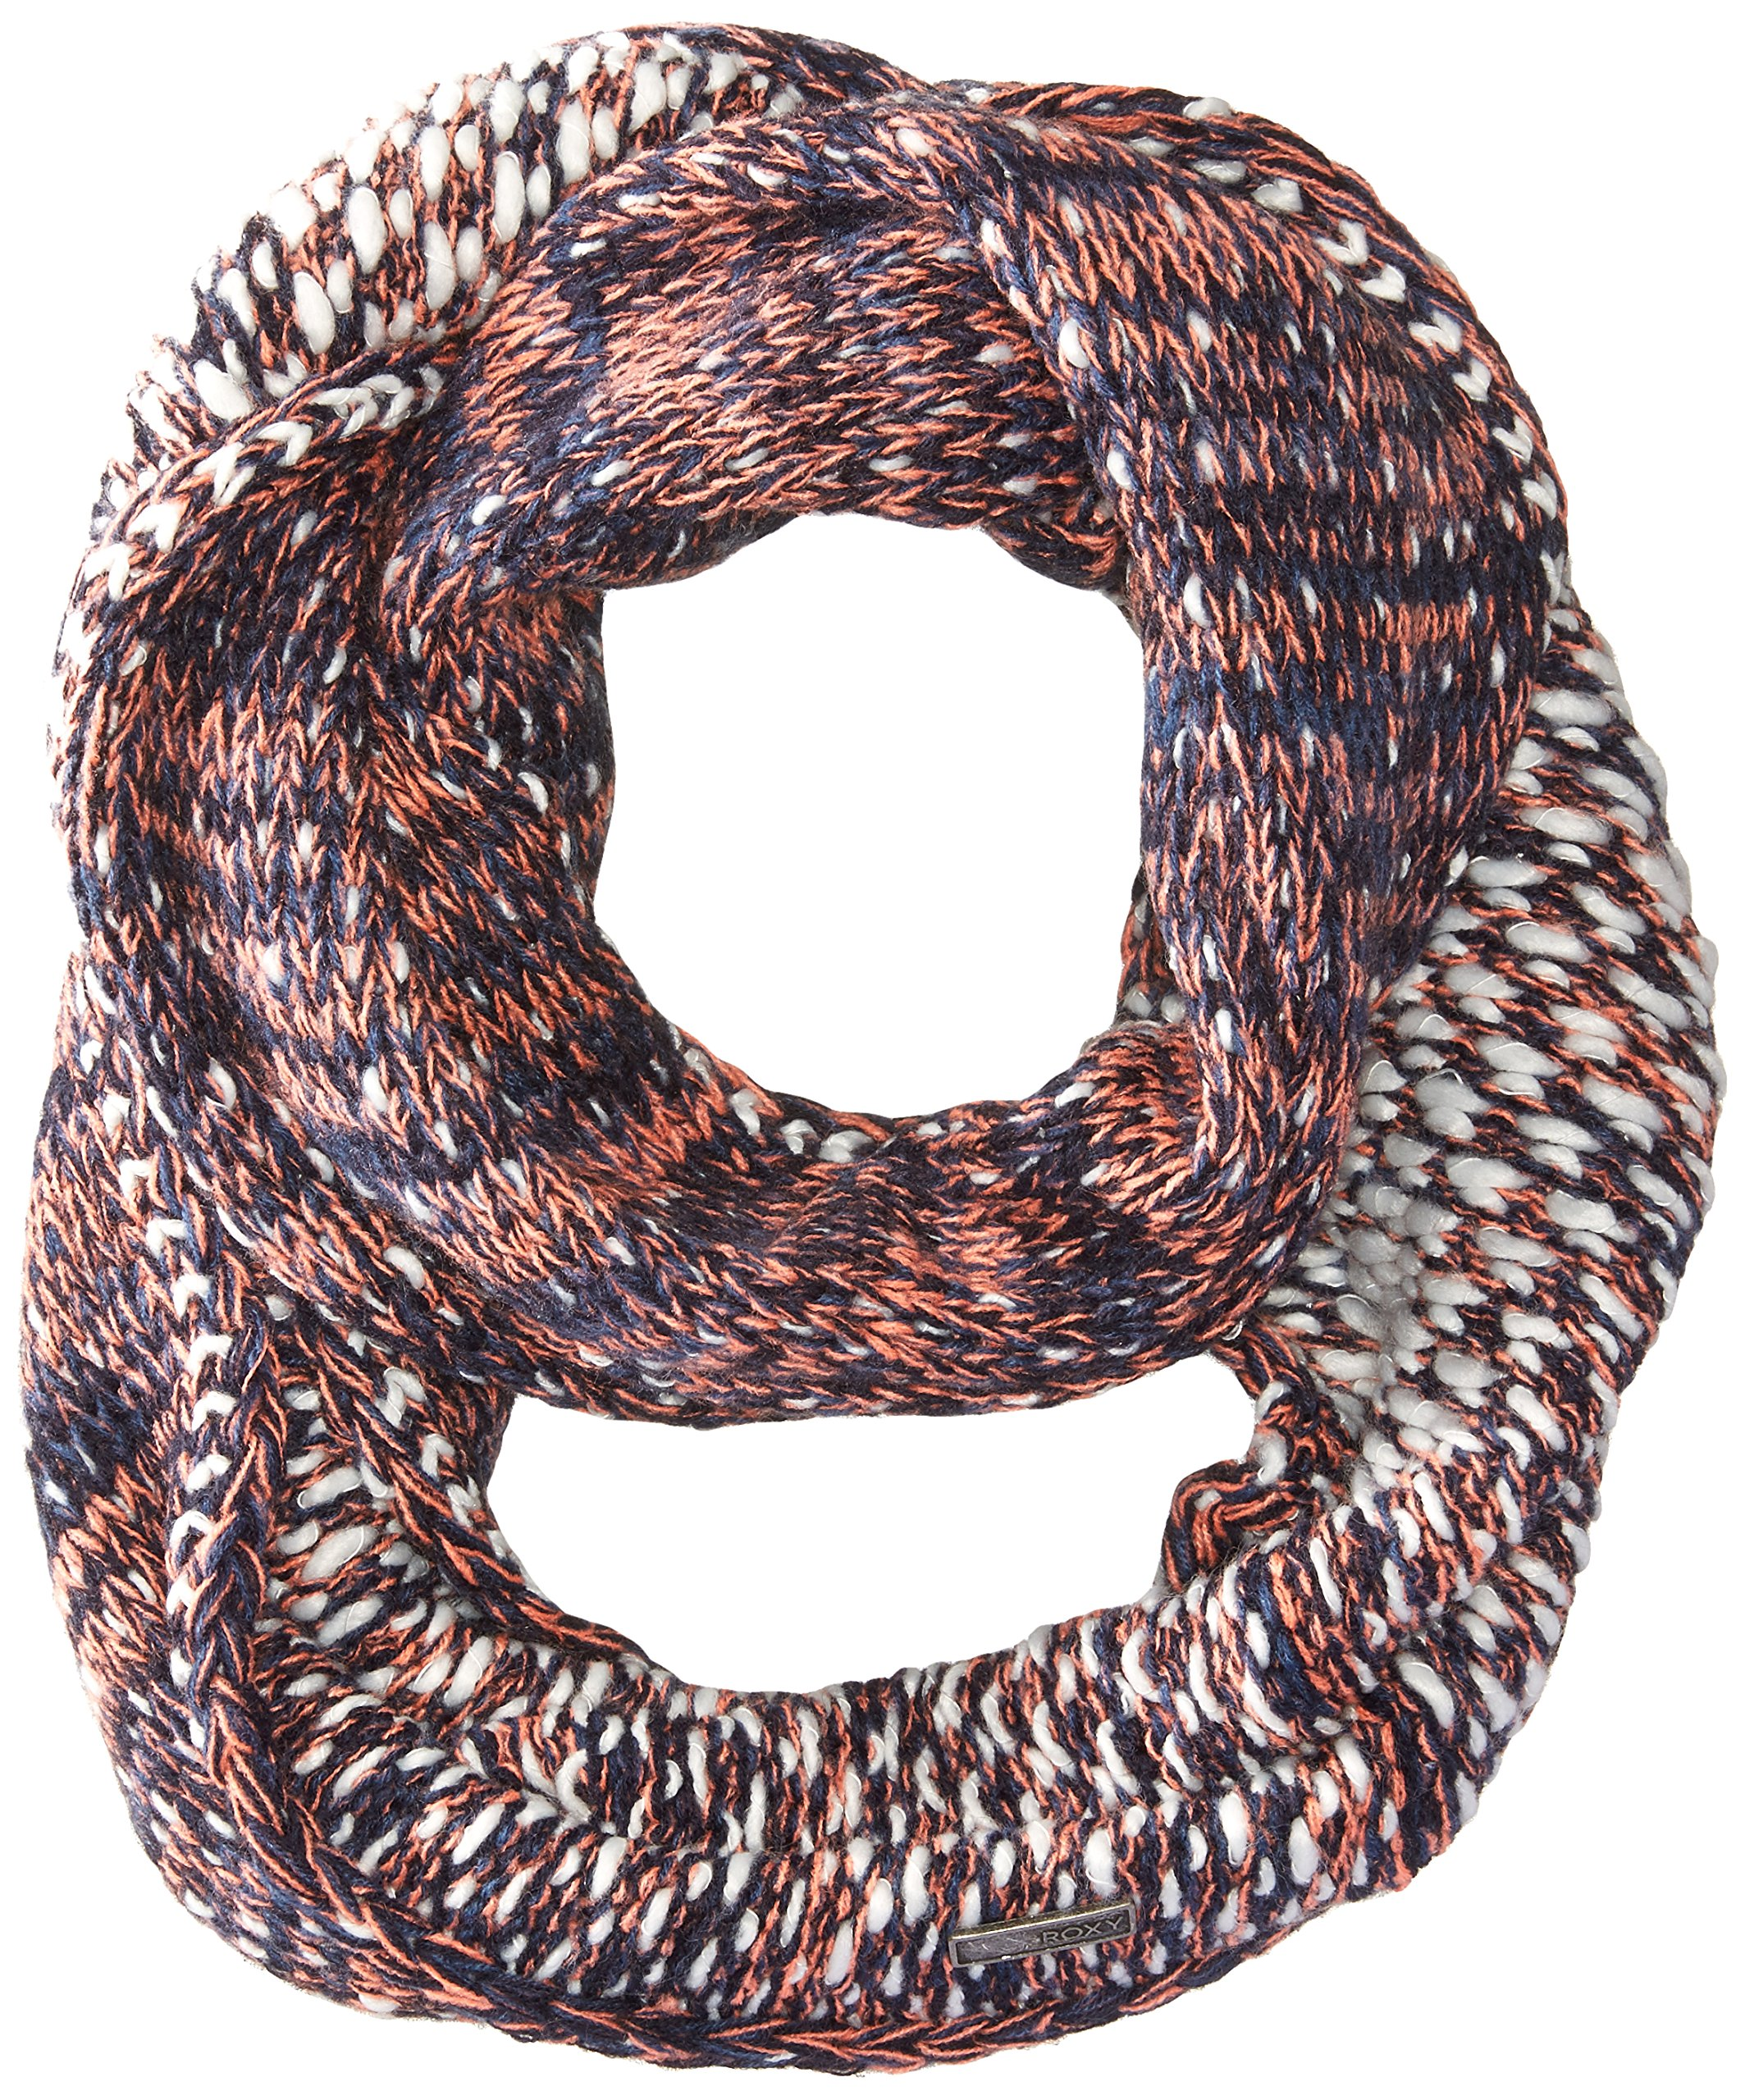 Roxy Women's Upgraded Scarf, Forged Iron, One Size